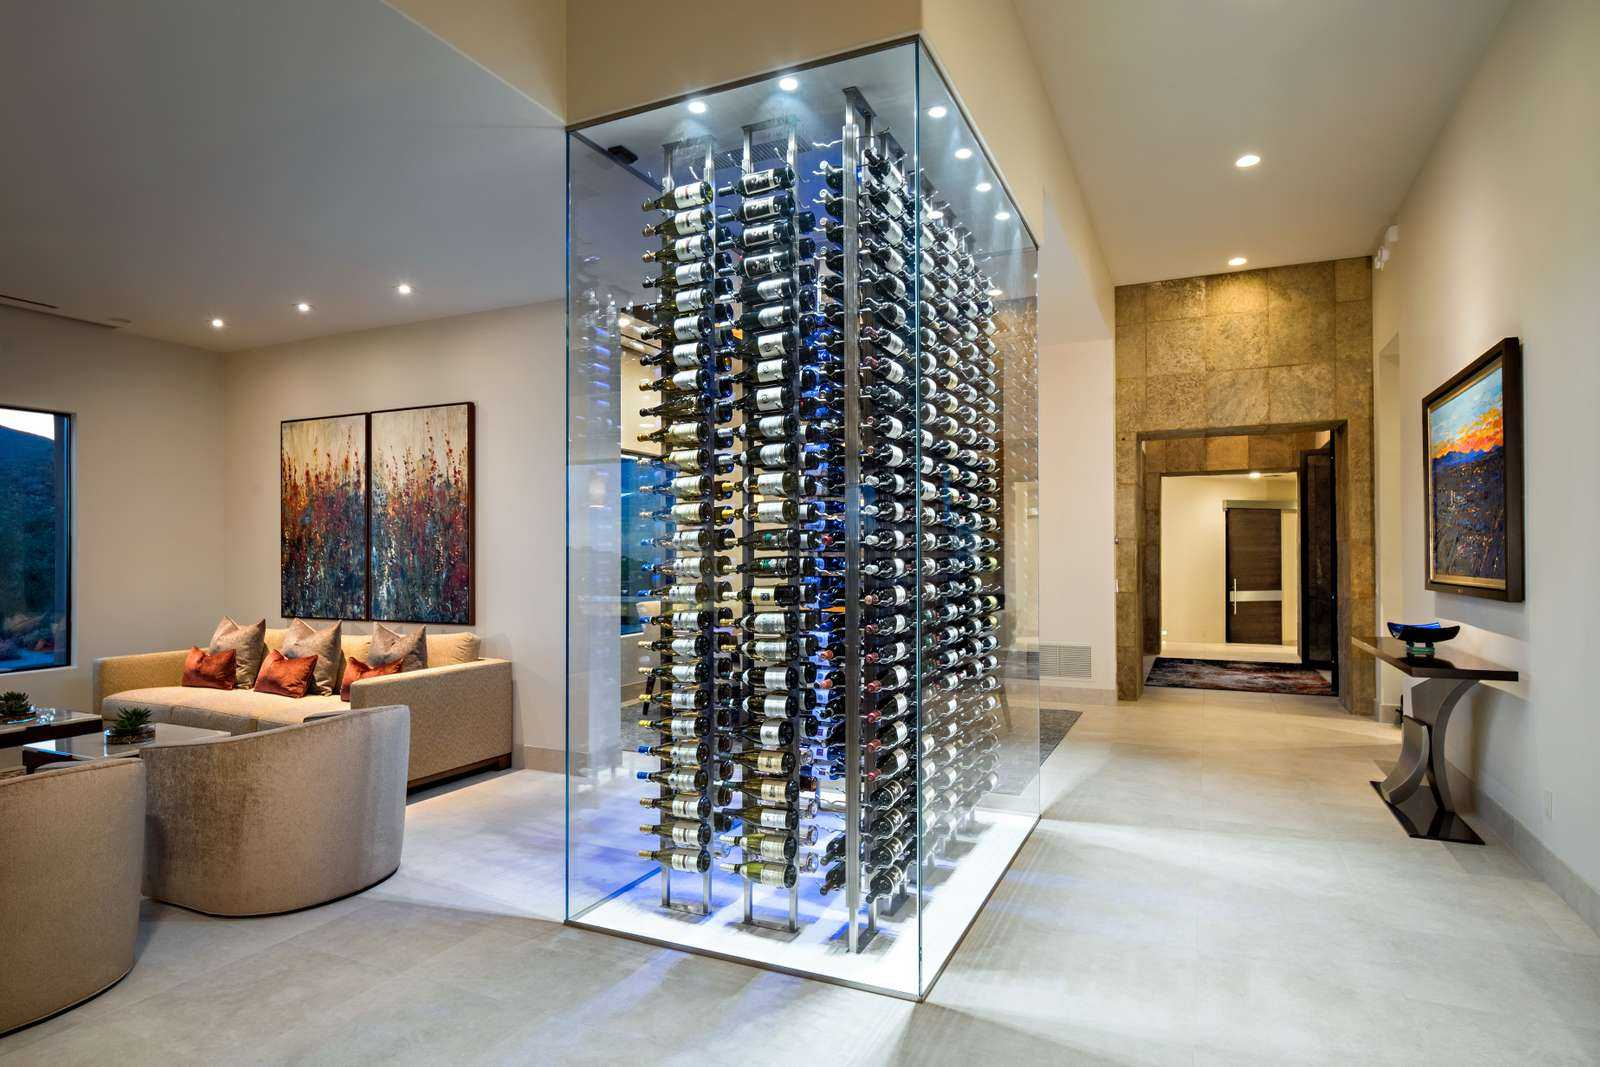 Restaurant Style Wine Cellar In Your Home Heritage Vine Inc